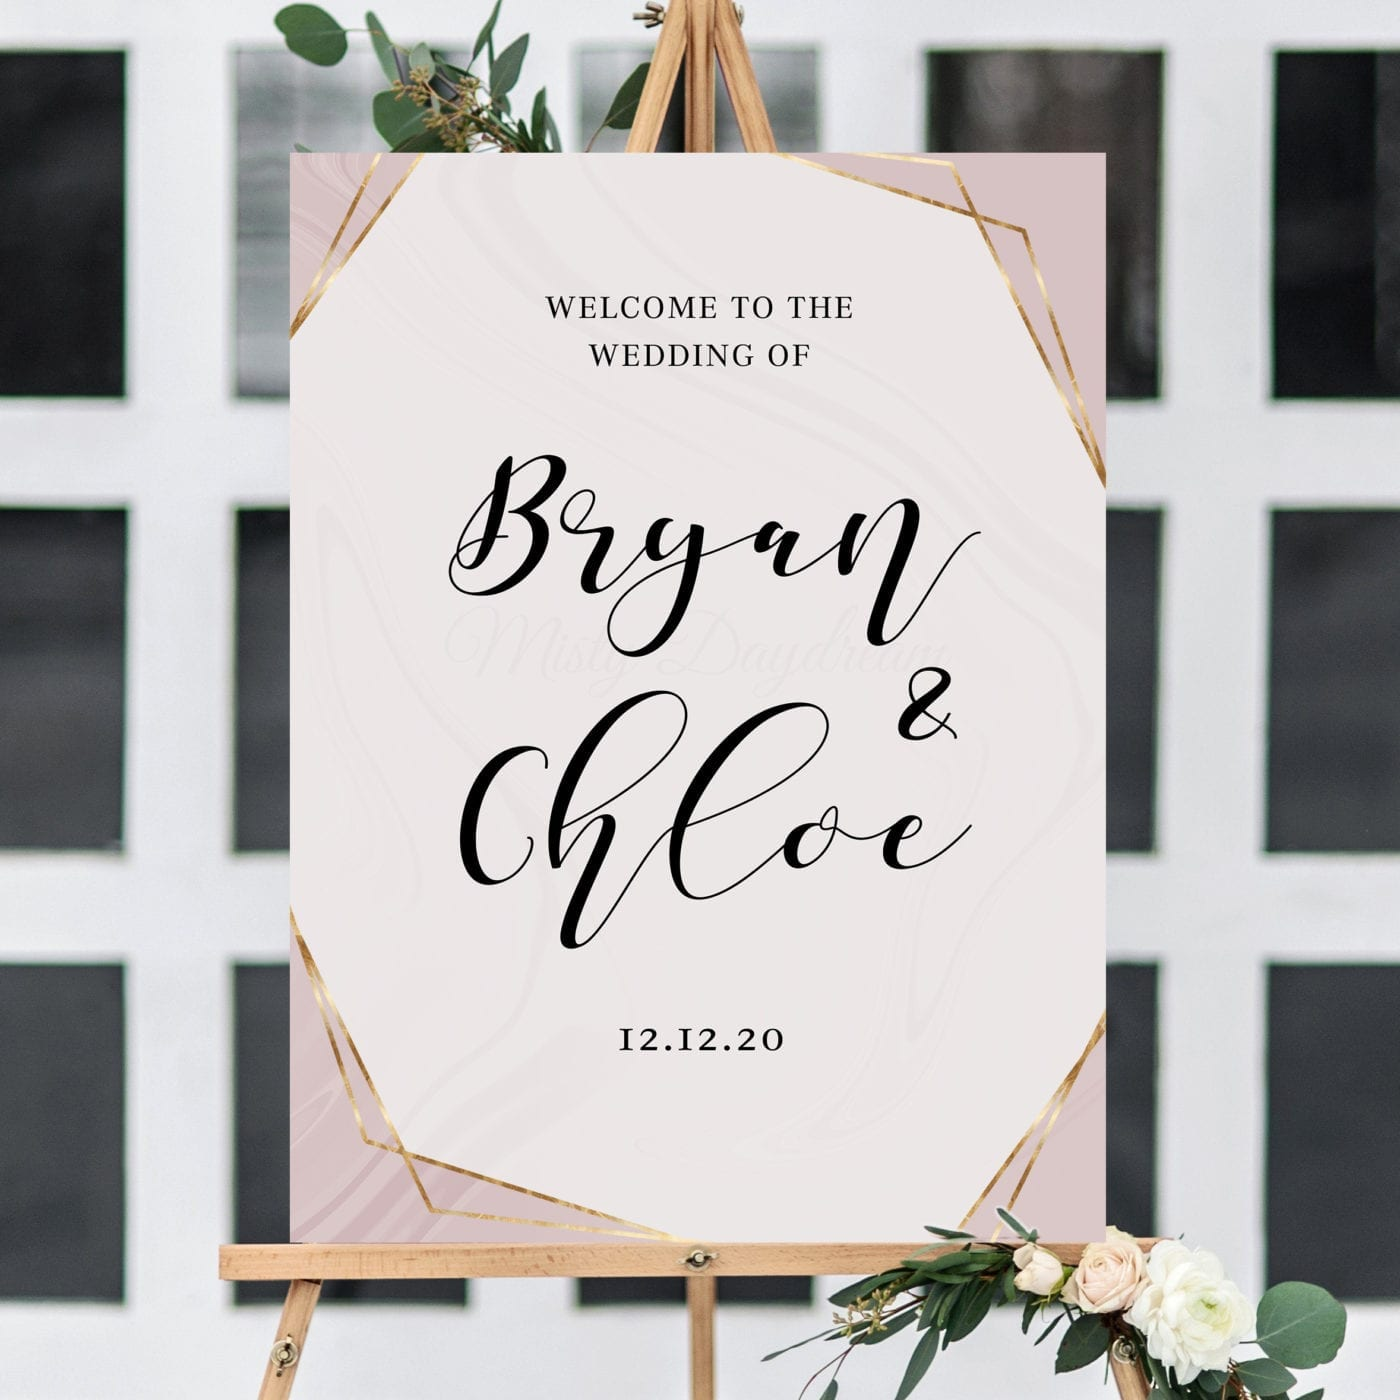 Wedding Welcome Sign - Design 16 Blush (Foam Board) - Misty Daydream